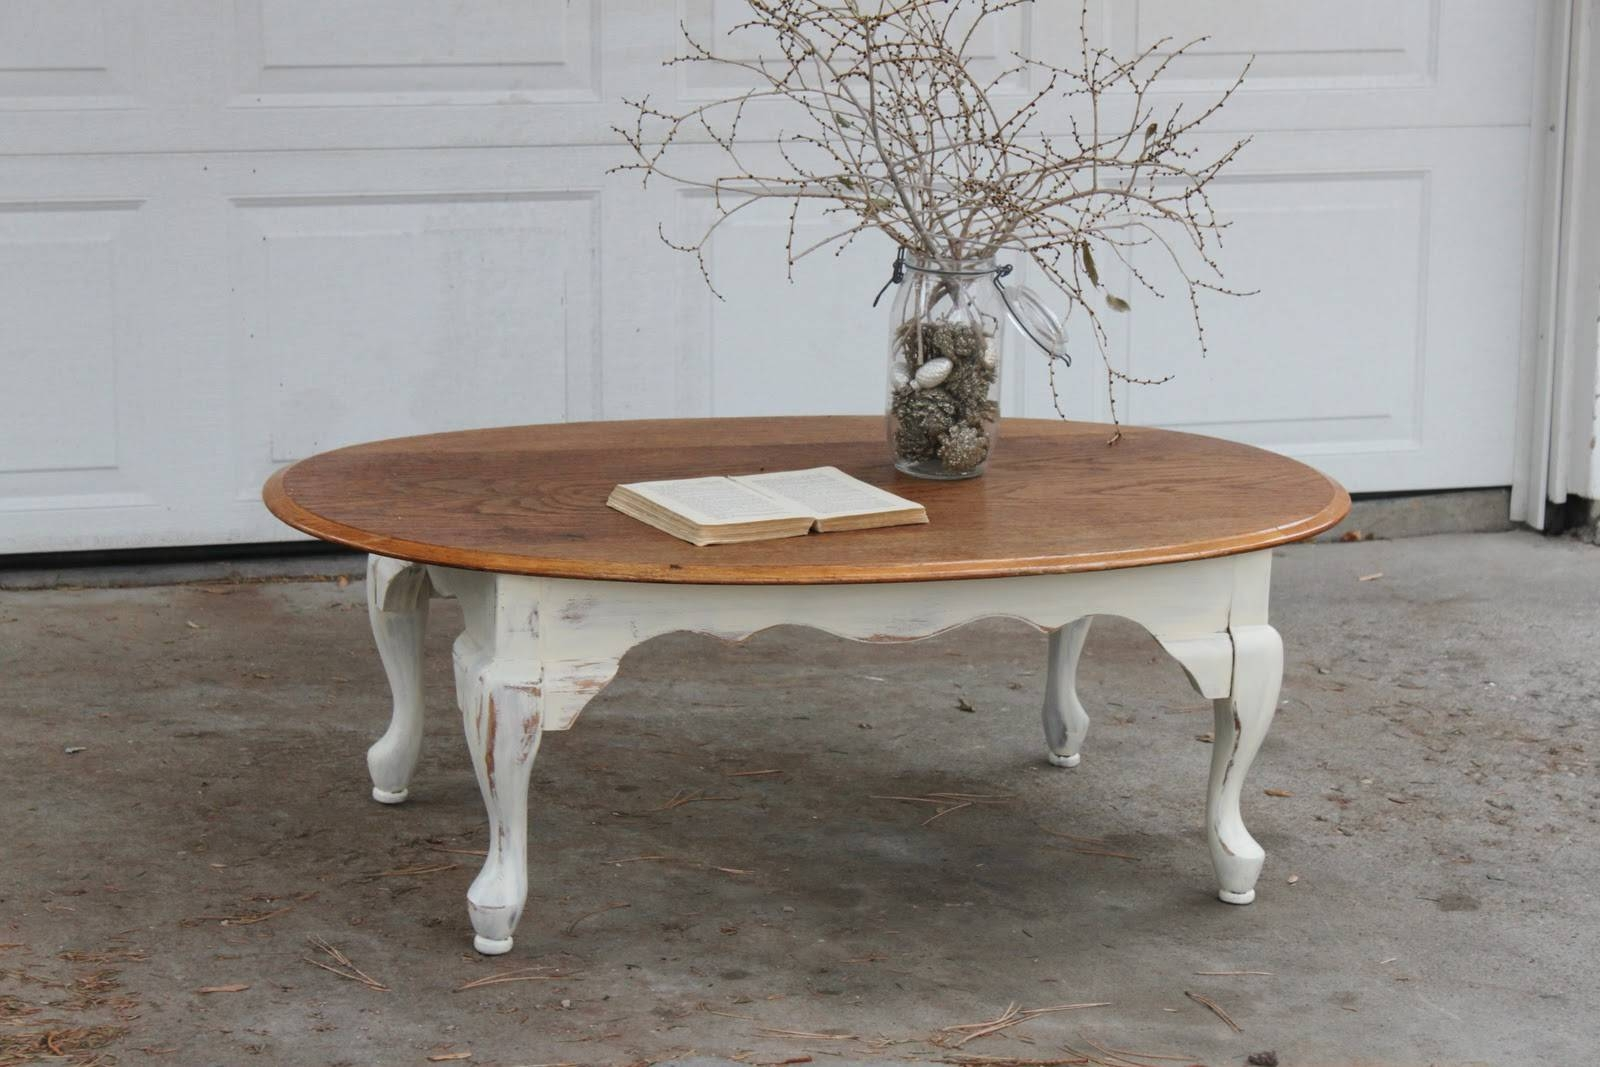 Shabby Chic Project Coffee Table – Shabby Chic Round Coffee Table within Oval White Coffee Tables (Image 29 of 30)